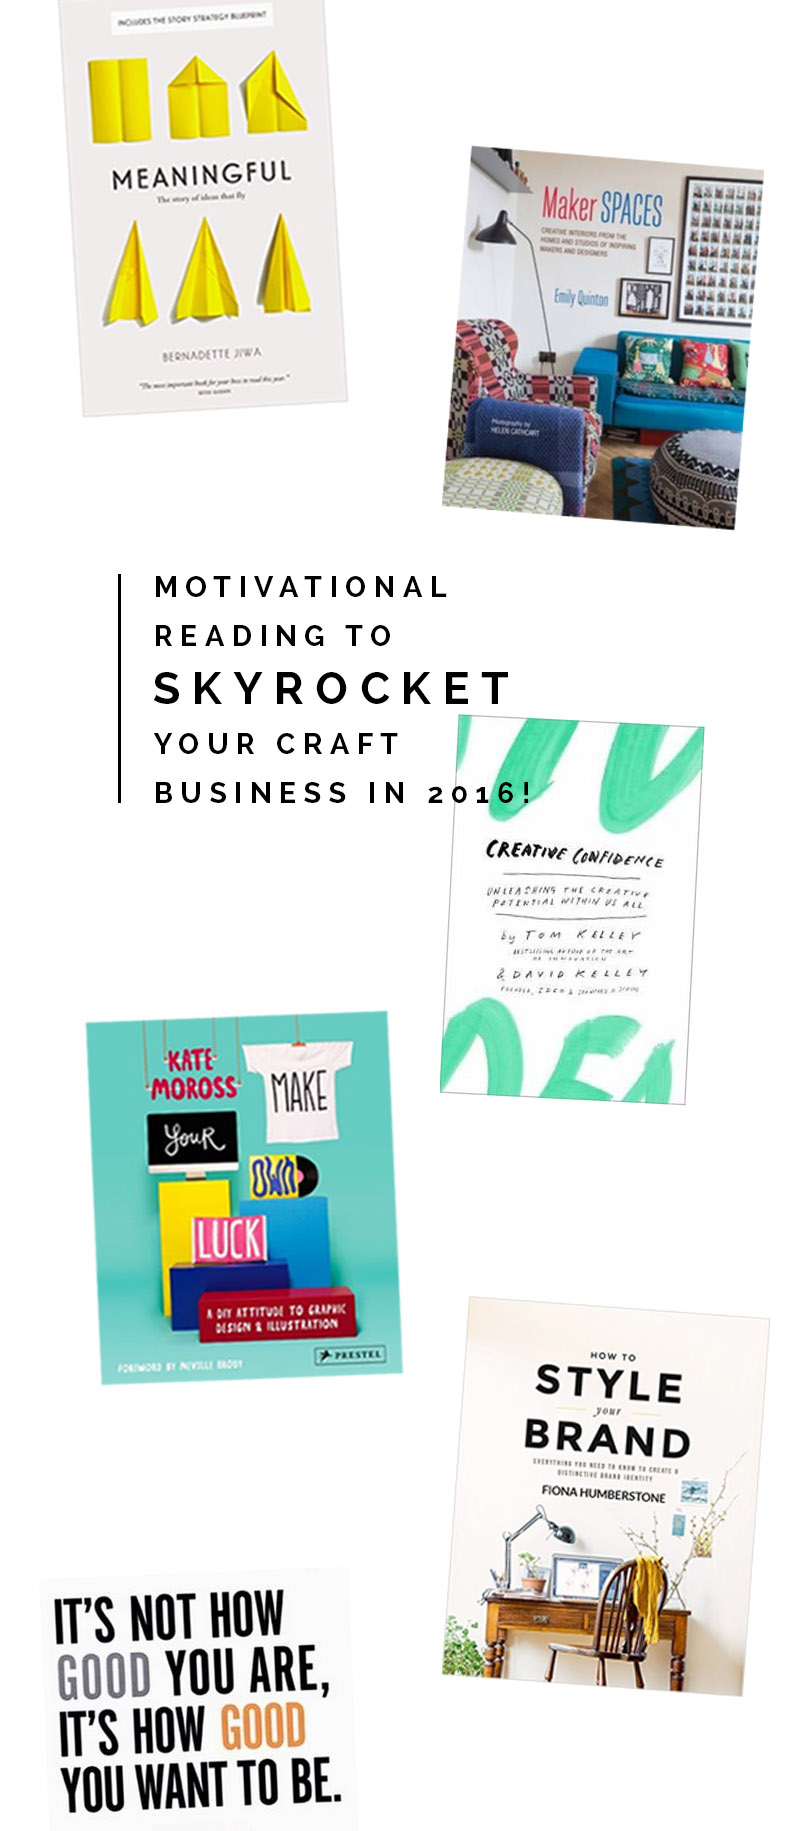 Motivational  reading to  SKYROCKET your Craft  Business in 2016!